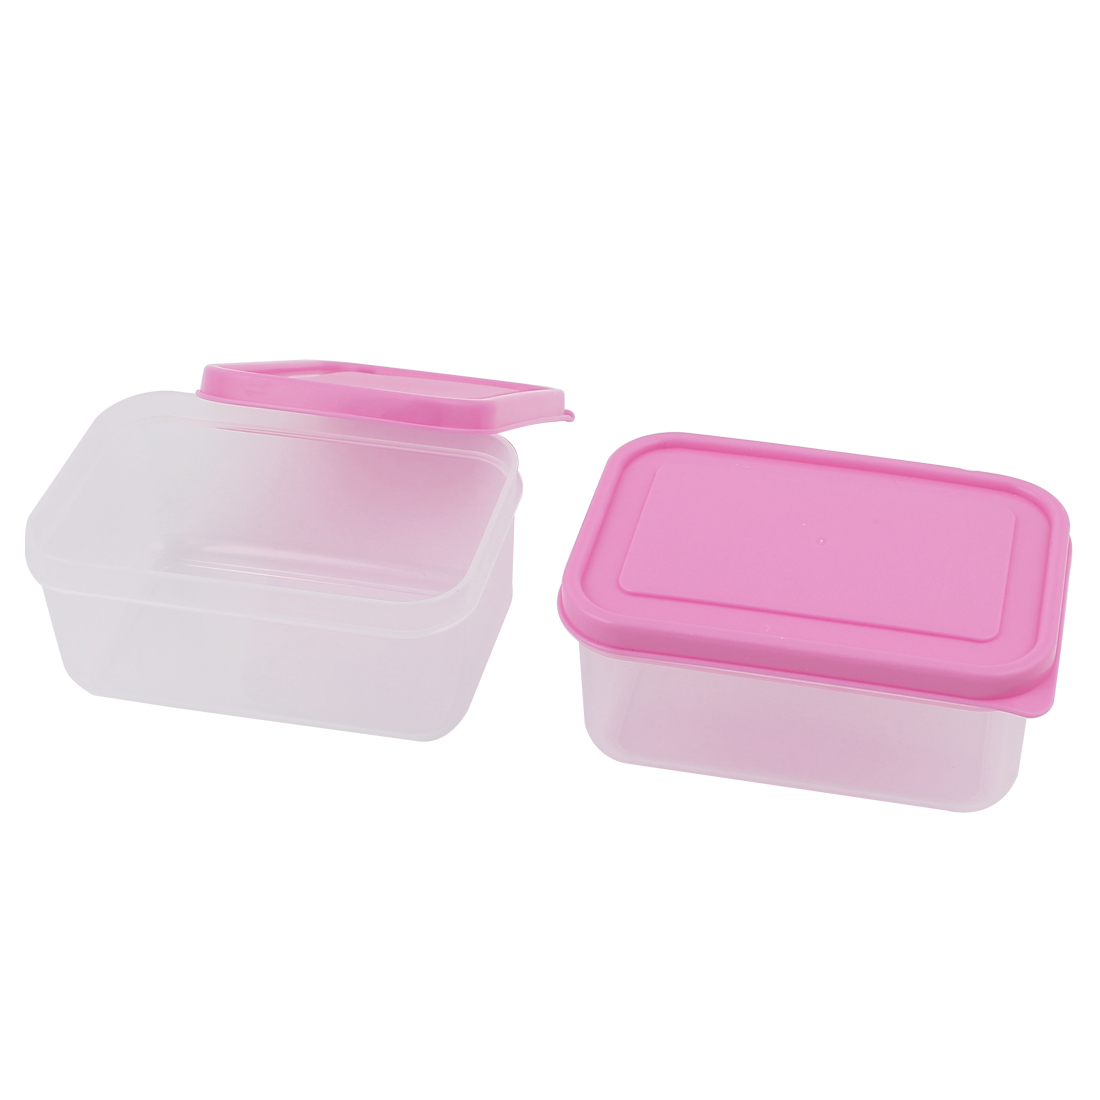 2pcs 300mL Capacity Pink Lid Clear PP Vacuum Bento Crisper Food Storage Box Lunch Case Container